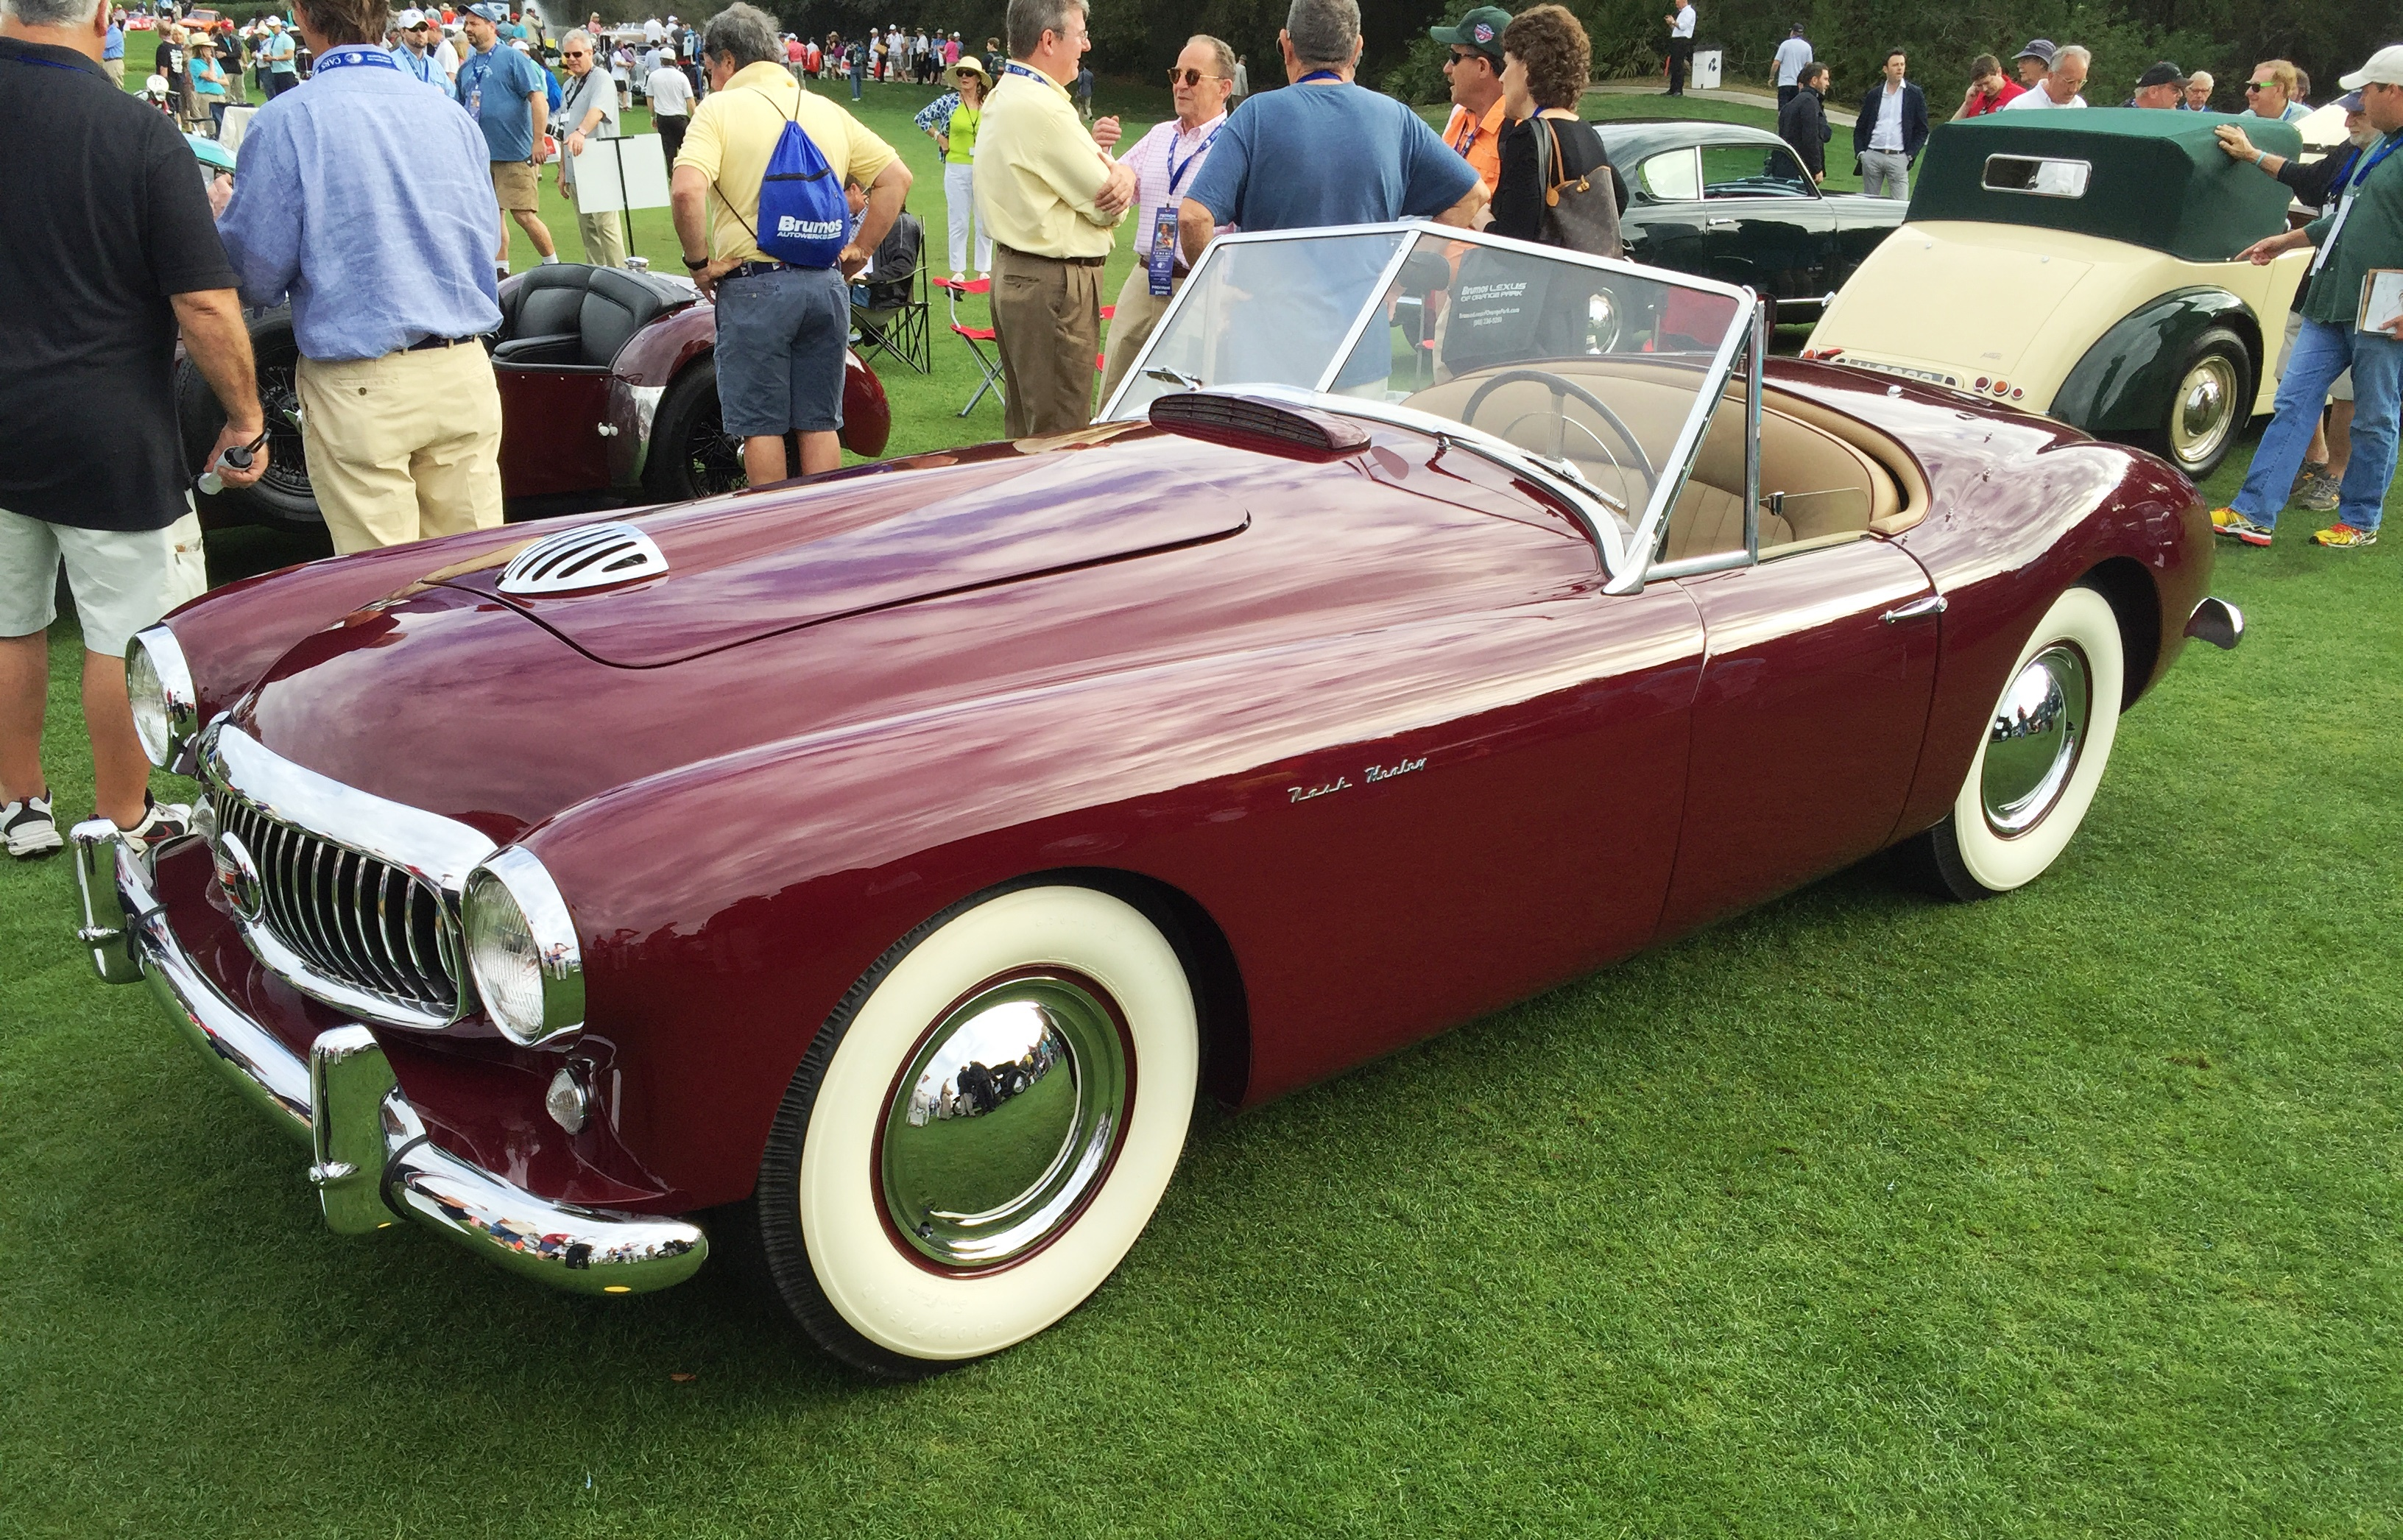 red Nash Healey - amelia island concours